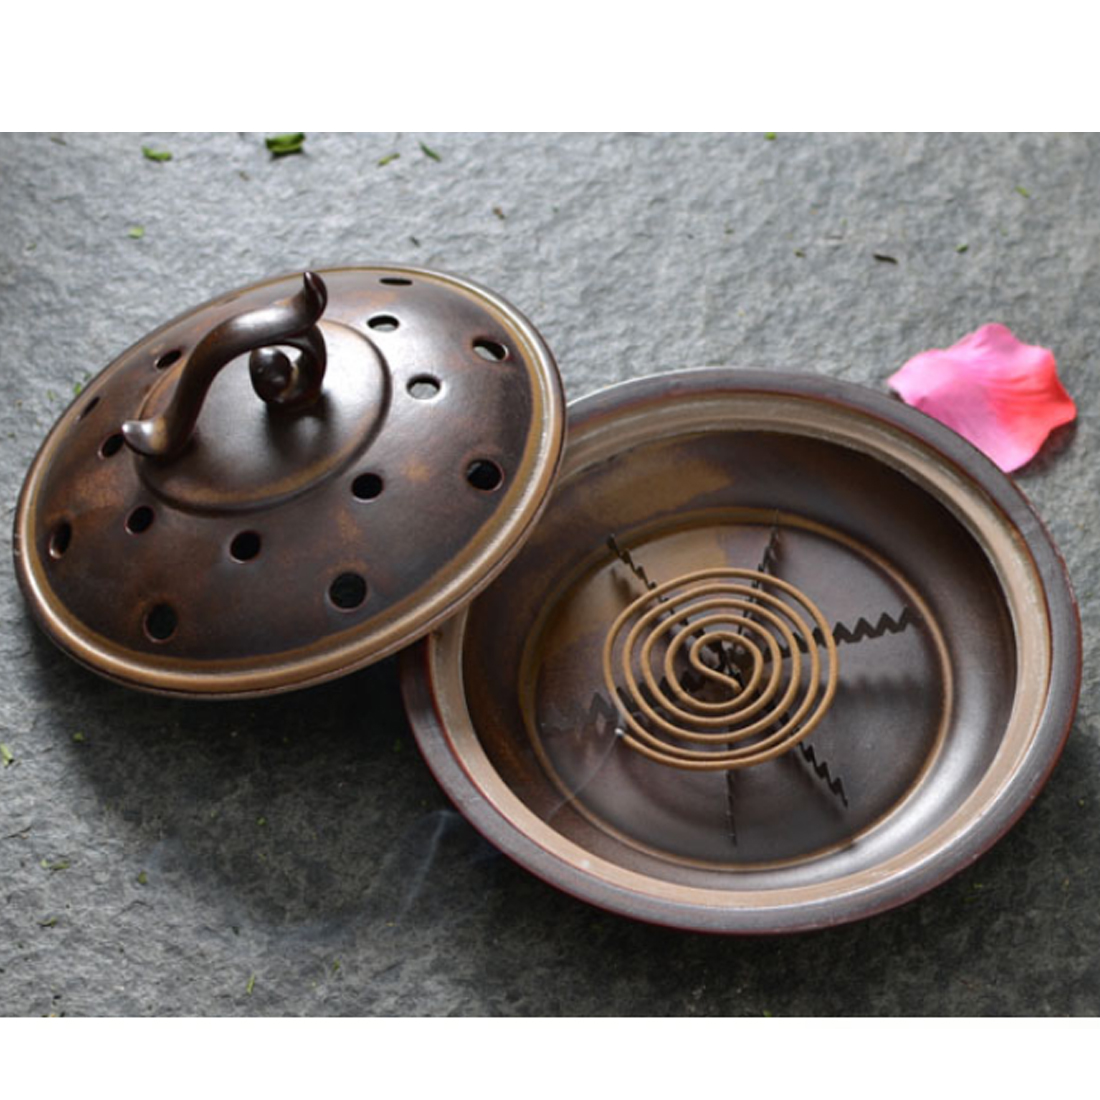 VICTMAX Retro Style Ceramic Mosquito Incense Burner Mosquito Coil Holder Pest Control Repellent - 16 Holes Antique LookingVICTMAX Retro Style Ceramic Mosquito Incense Burner Mosquito Coil Holder Pest Control Repellent - 16 Holes Antique Looking